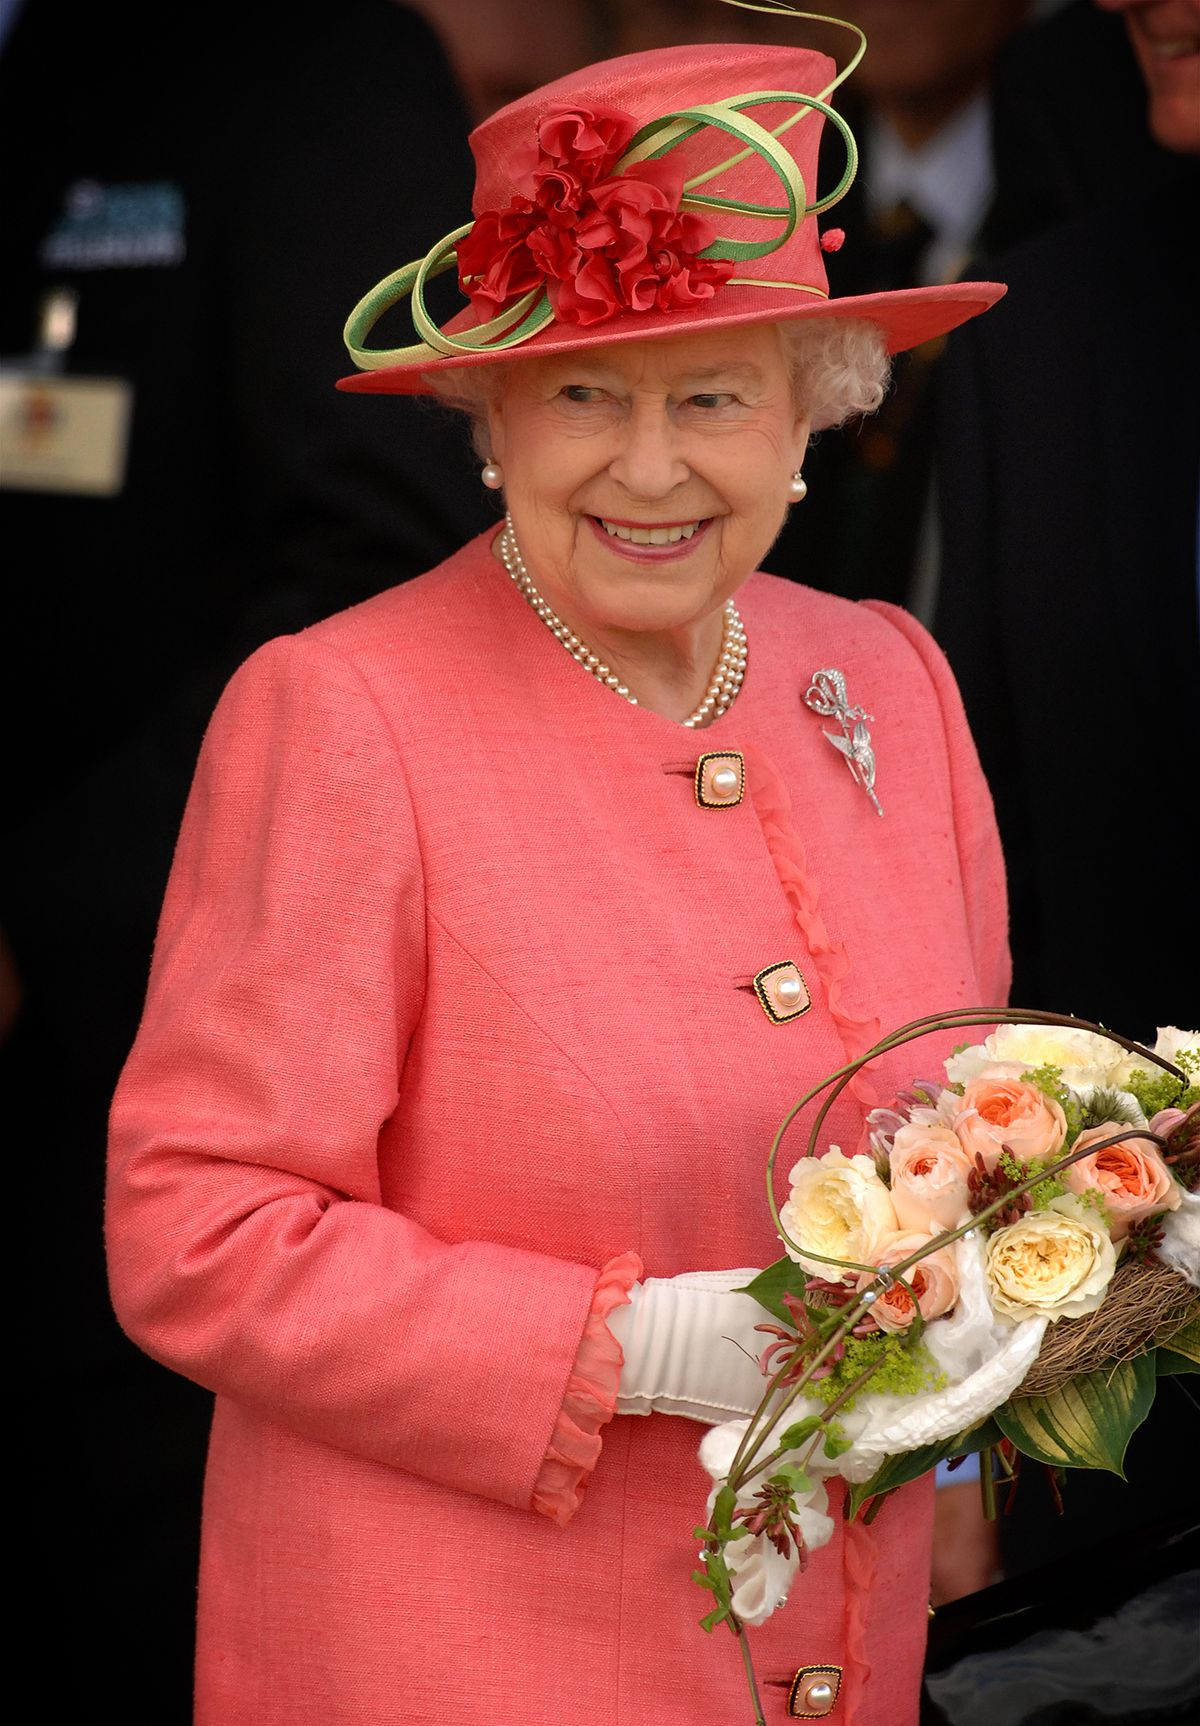 The Queen at RAF Cosford Museum for the diamond jubilee pageant in 2012